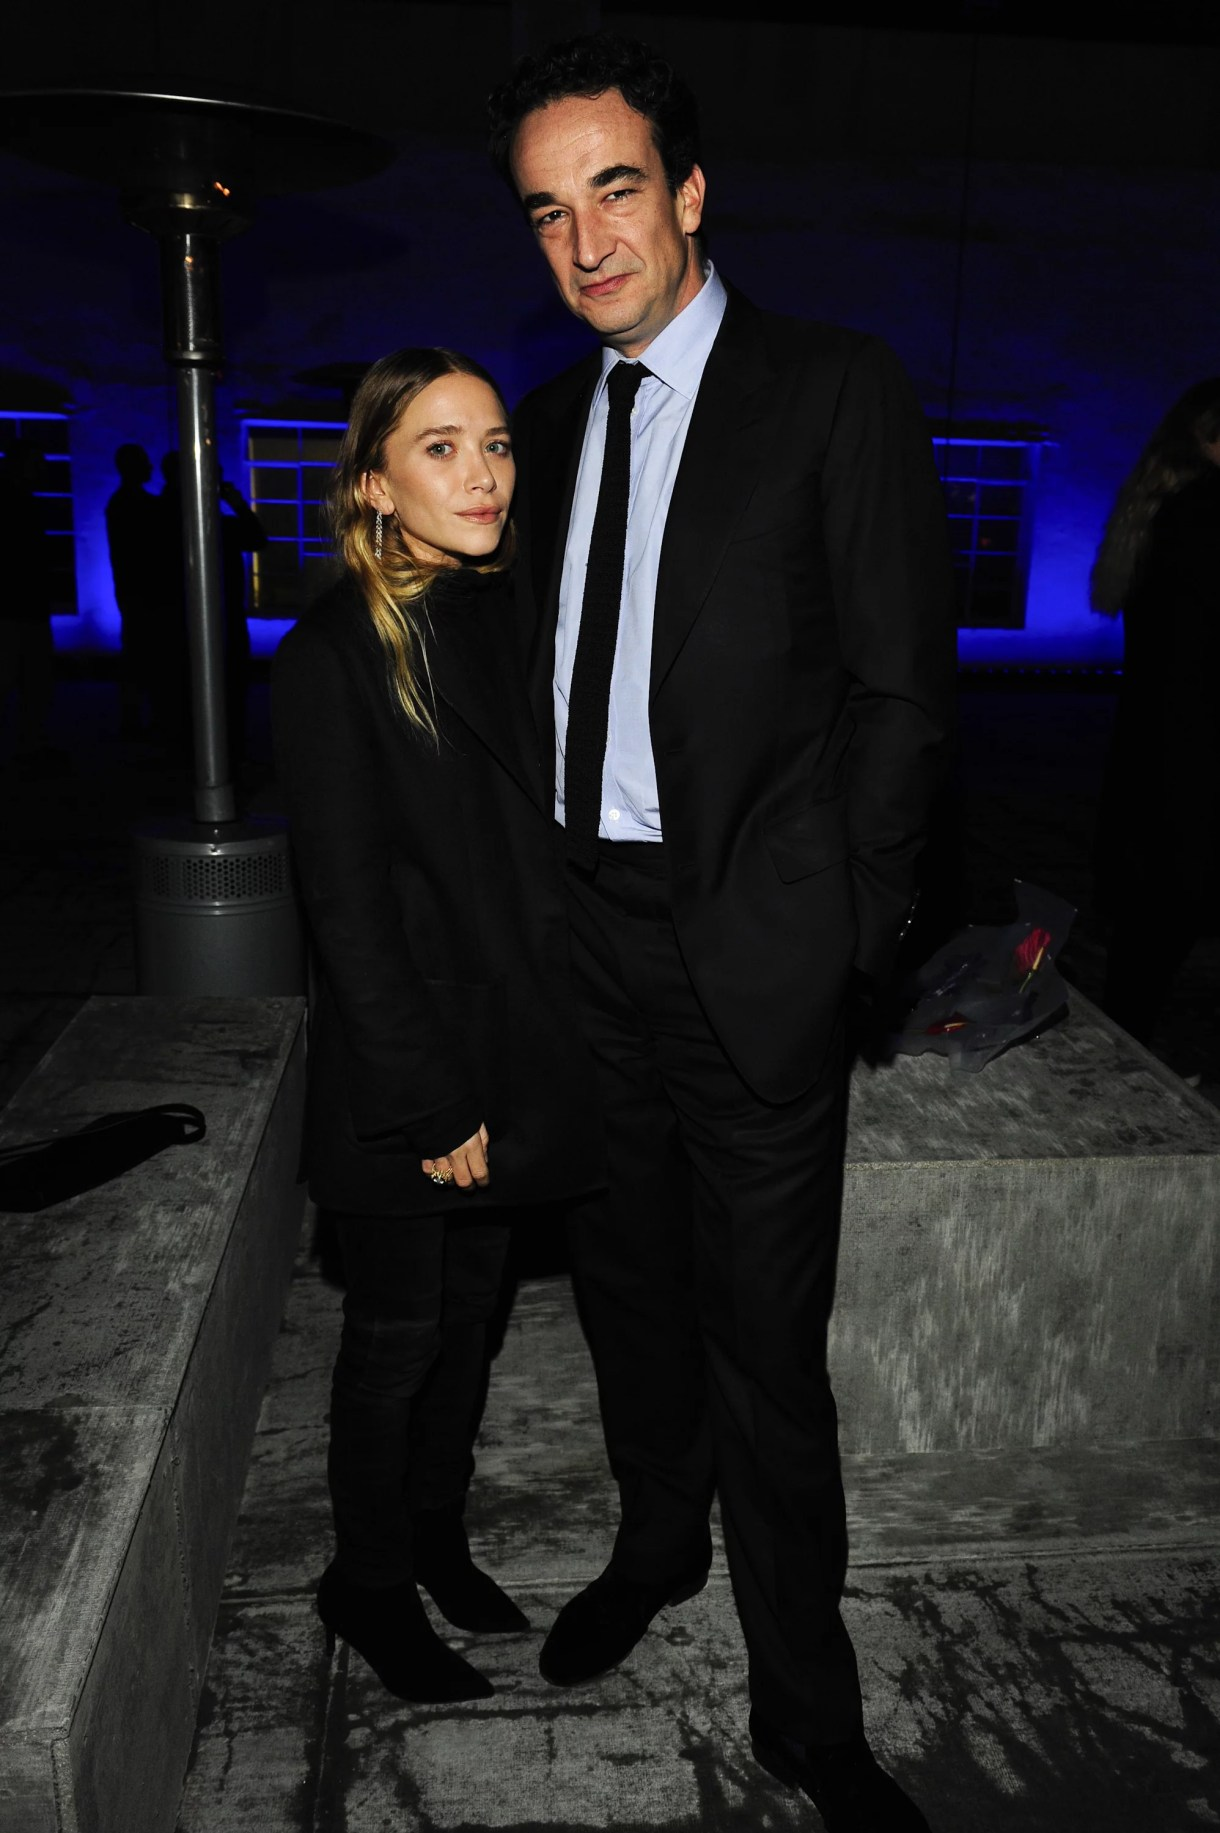 LOS ANGELES, CA - DECEMBER 5:  Mary-Kate Olsen, Olivier Sarkozy attend the Just One Eye Launch of the Utilitarian Backpack Event at Just One Eye on December 5, 2014 in Hollywood, California.  (Photo by Amy Graves/WireImage)